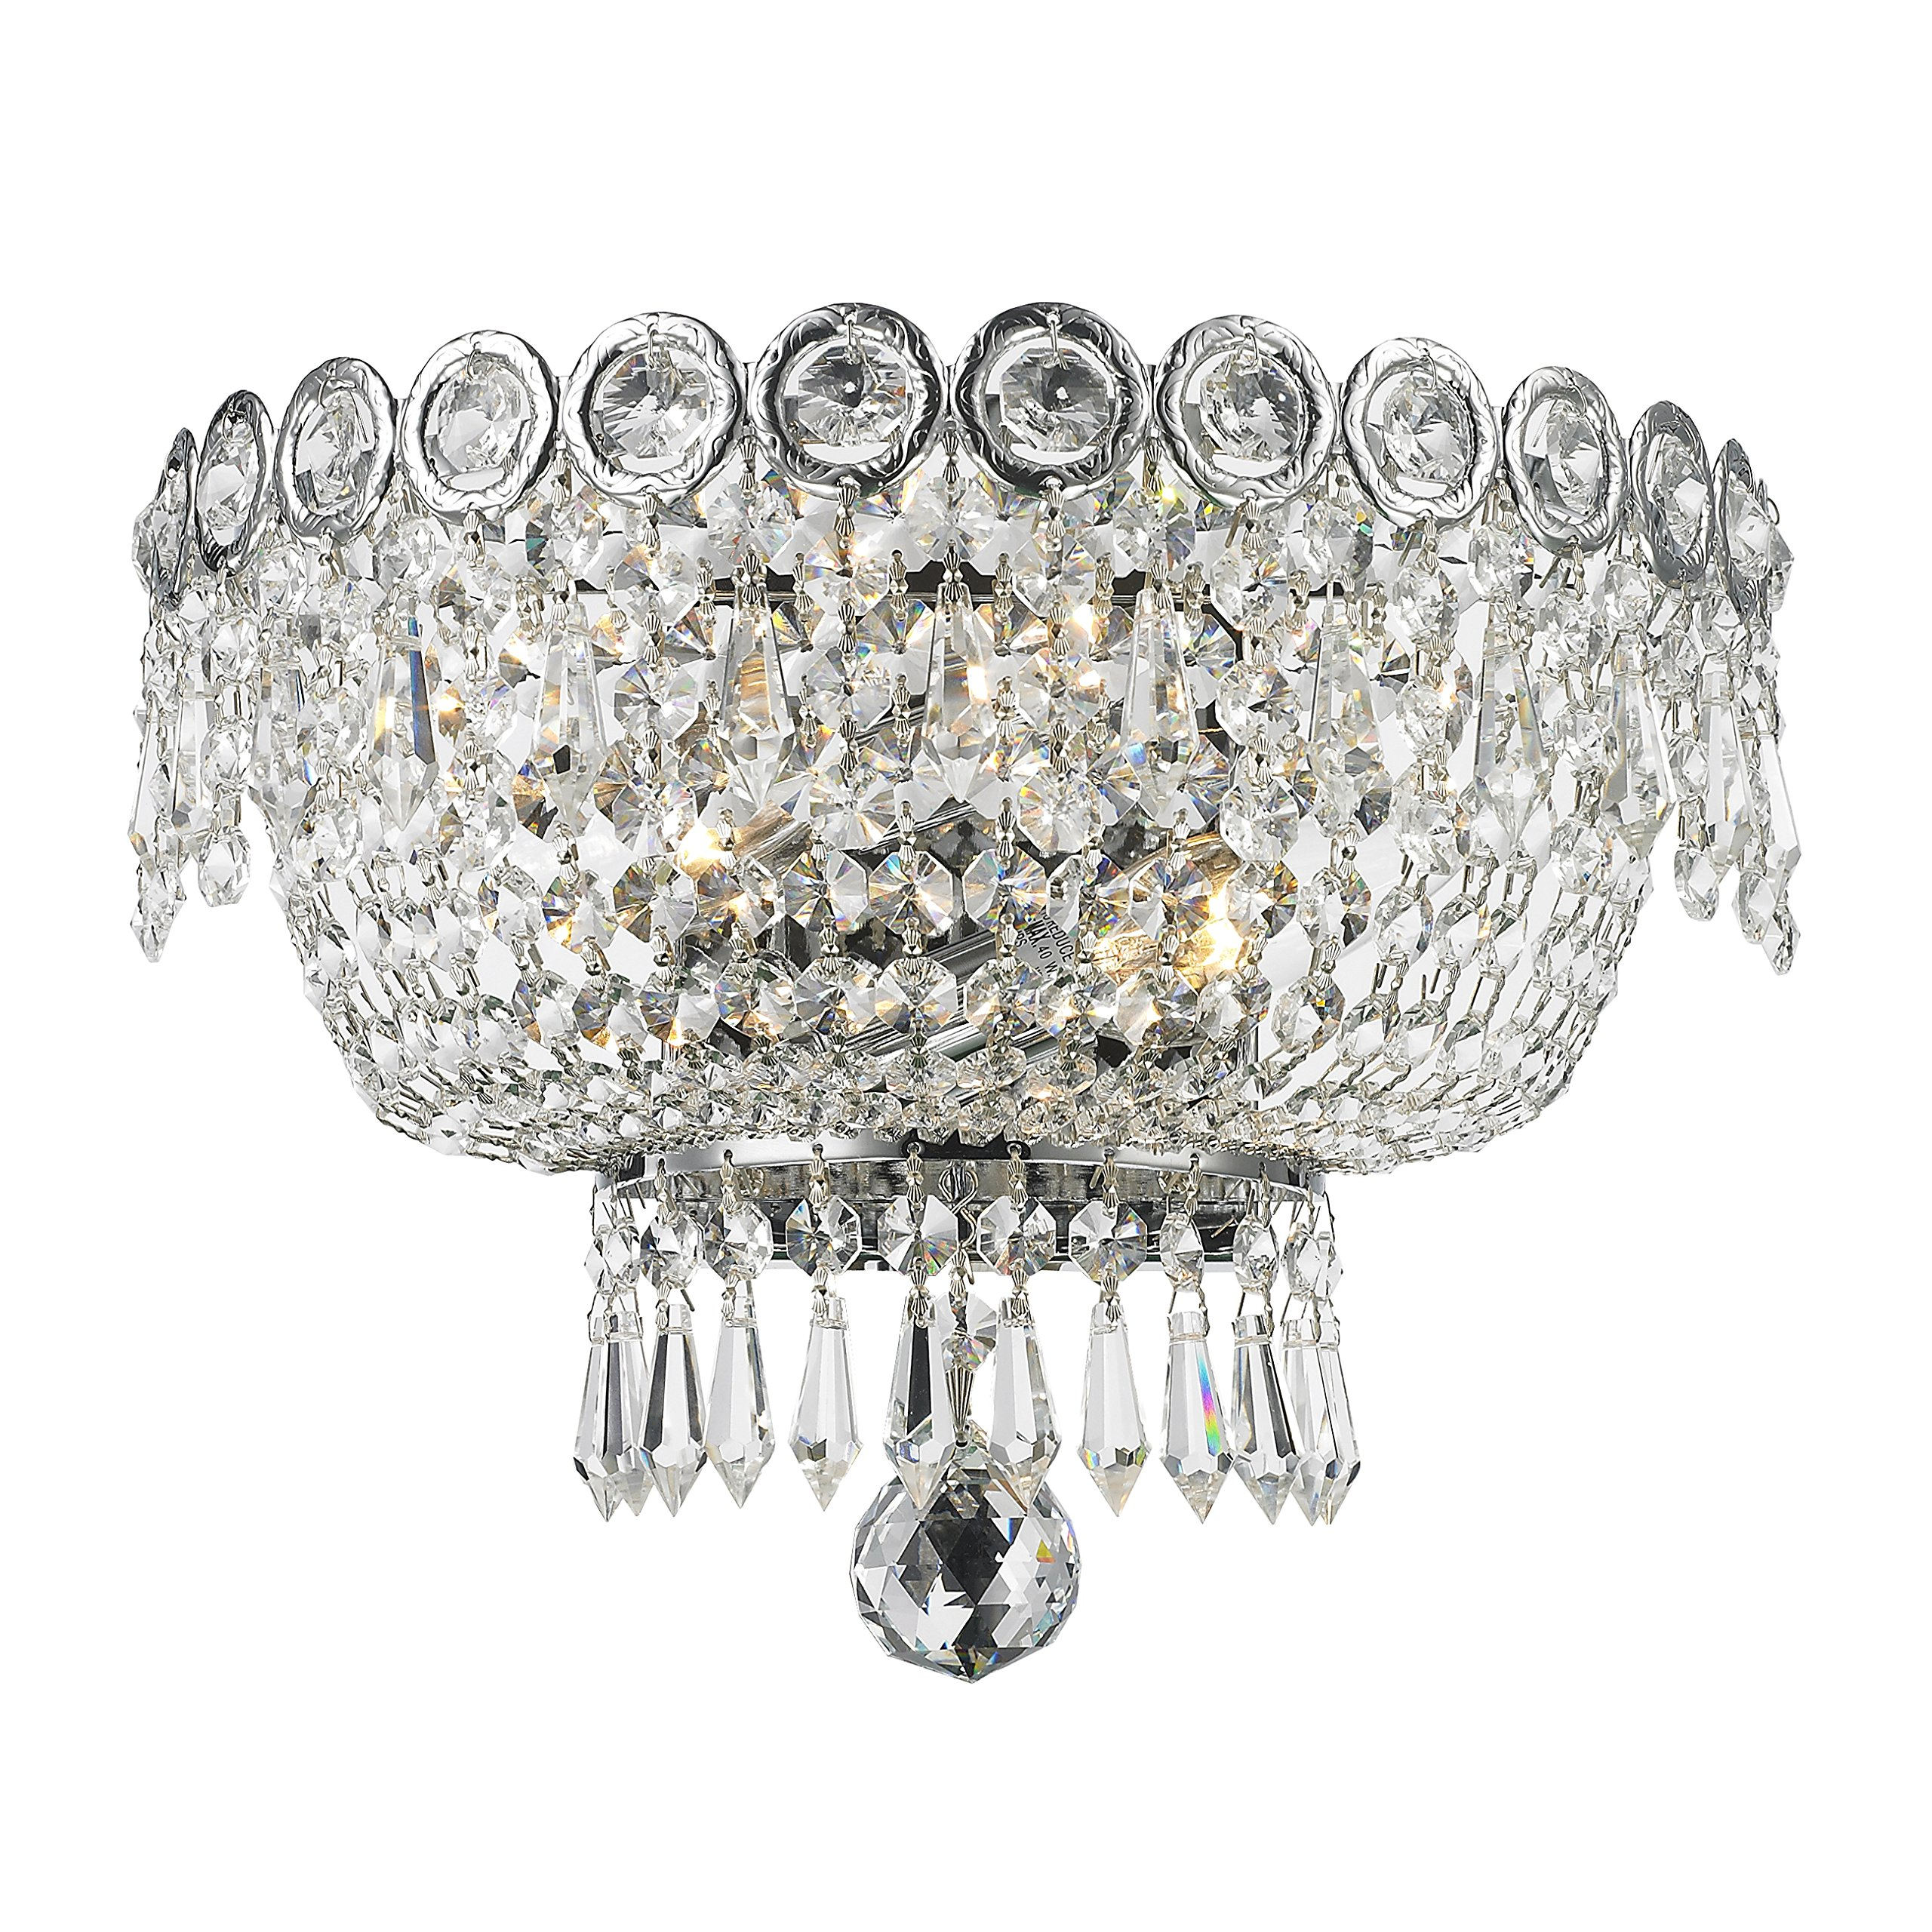 Worldwide Lighting Empire Collection 2 Light Chrome Finish and Clear Crystal Wall Sconce 12'' W x 8'' H Medium by Worldwide Lighting